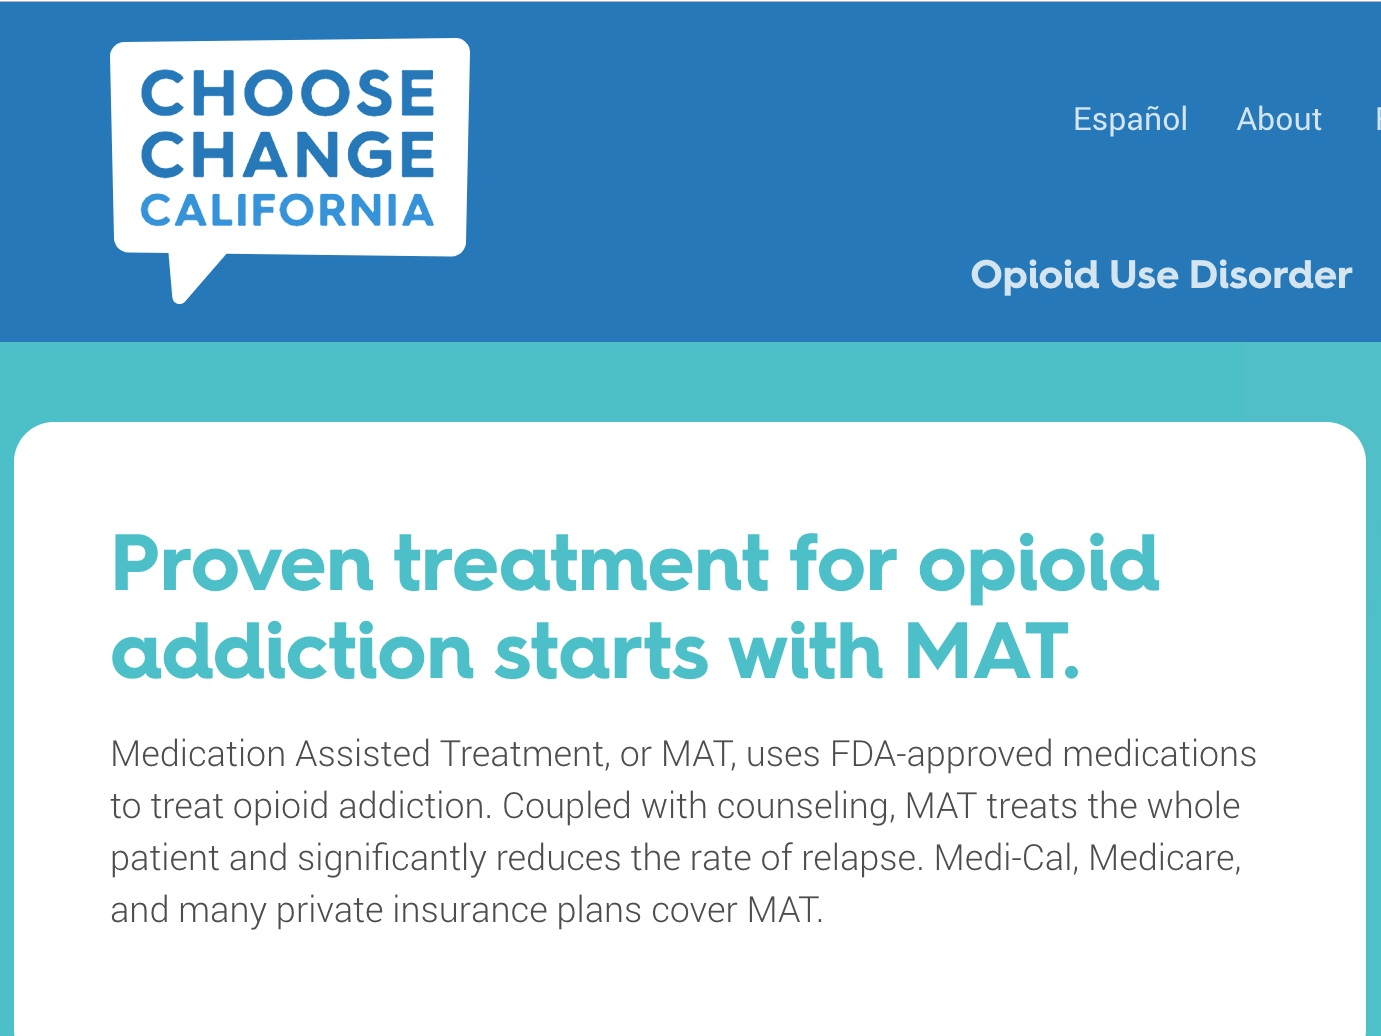 drug treatment support - California has devoted resources and efforts to dramatically expand access to Medication Assisted Treatment services throughout the state. Services are available in a variety of settings and can be accessed through a network of physicians and treatment facilities, including many primary care physicians.